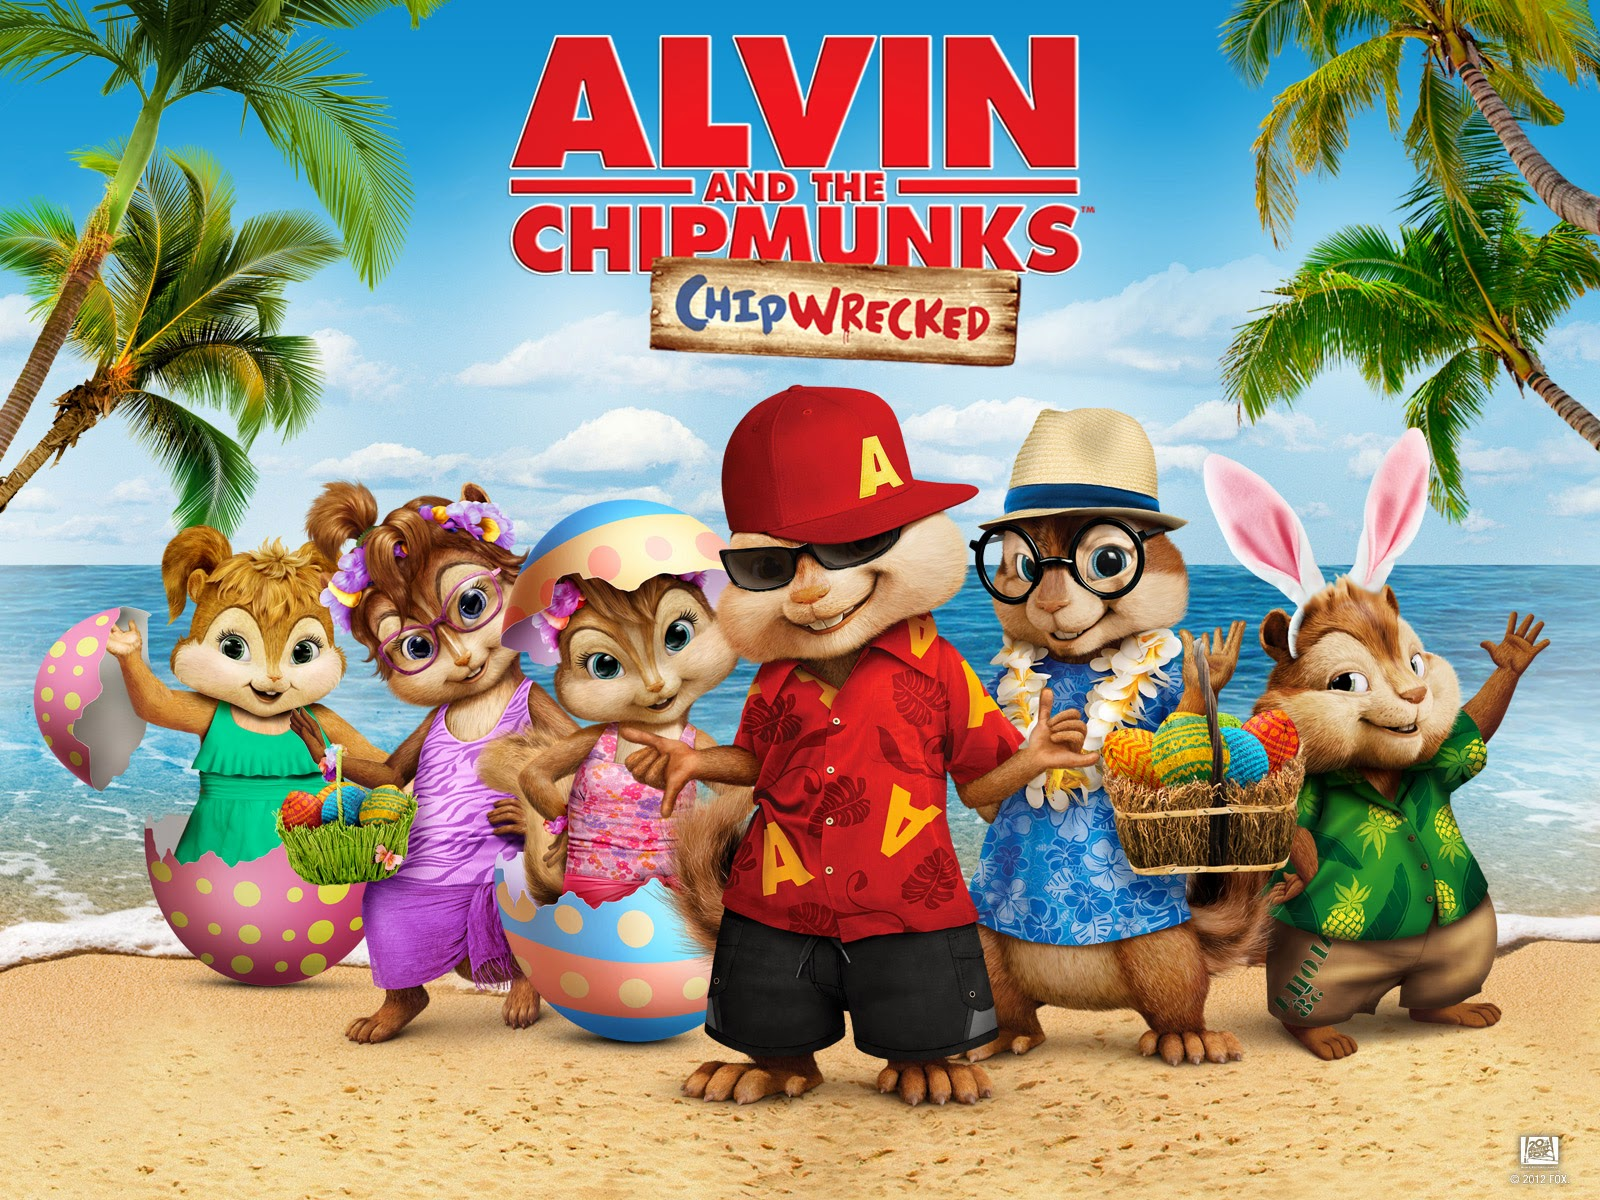 Alvin And The Chipmunks 3 Images the book was better: episode 105: alvin and the chipmunks 3